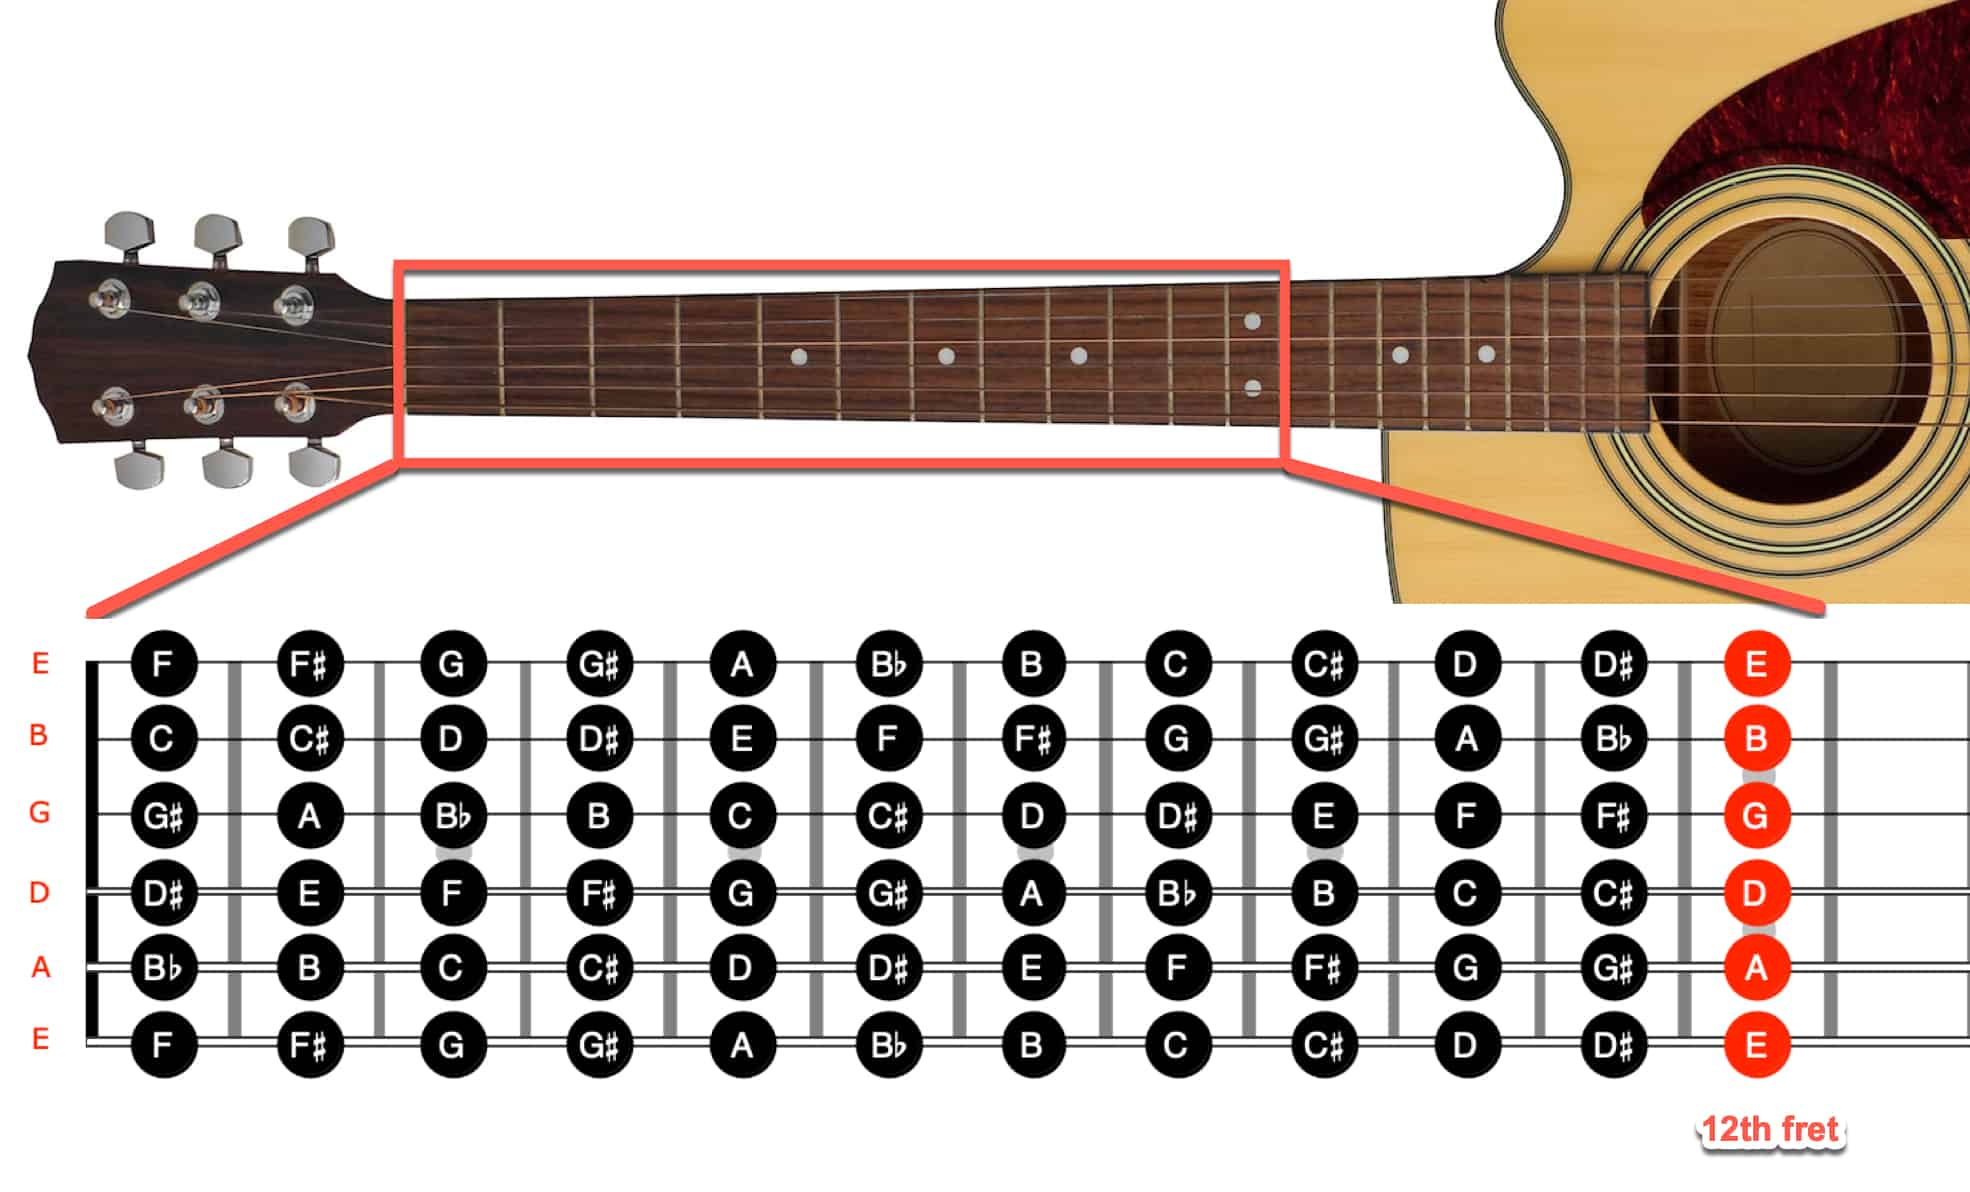 Guitar Fretboard - How to Memorize and Find Any Note Quickly